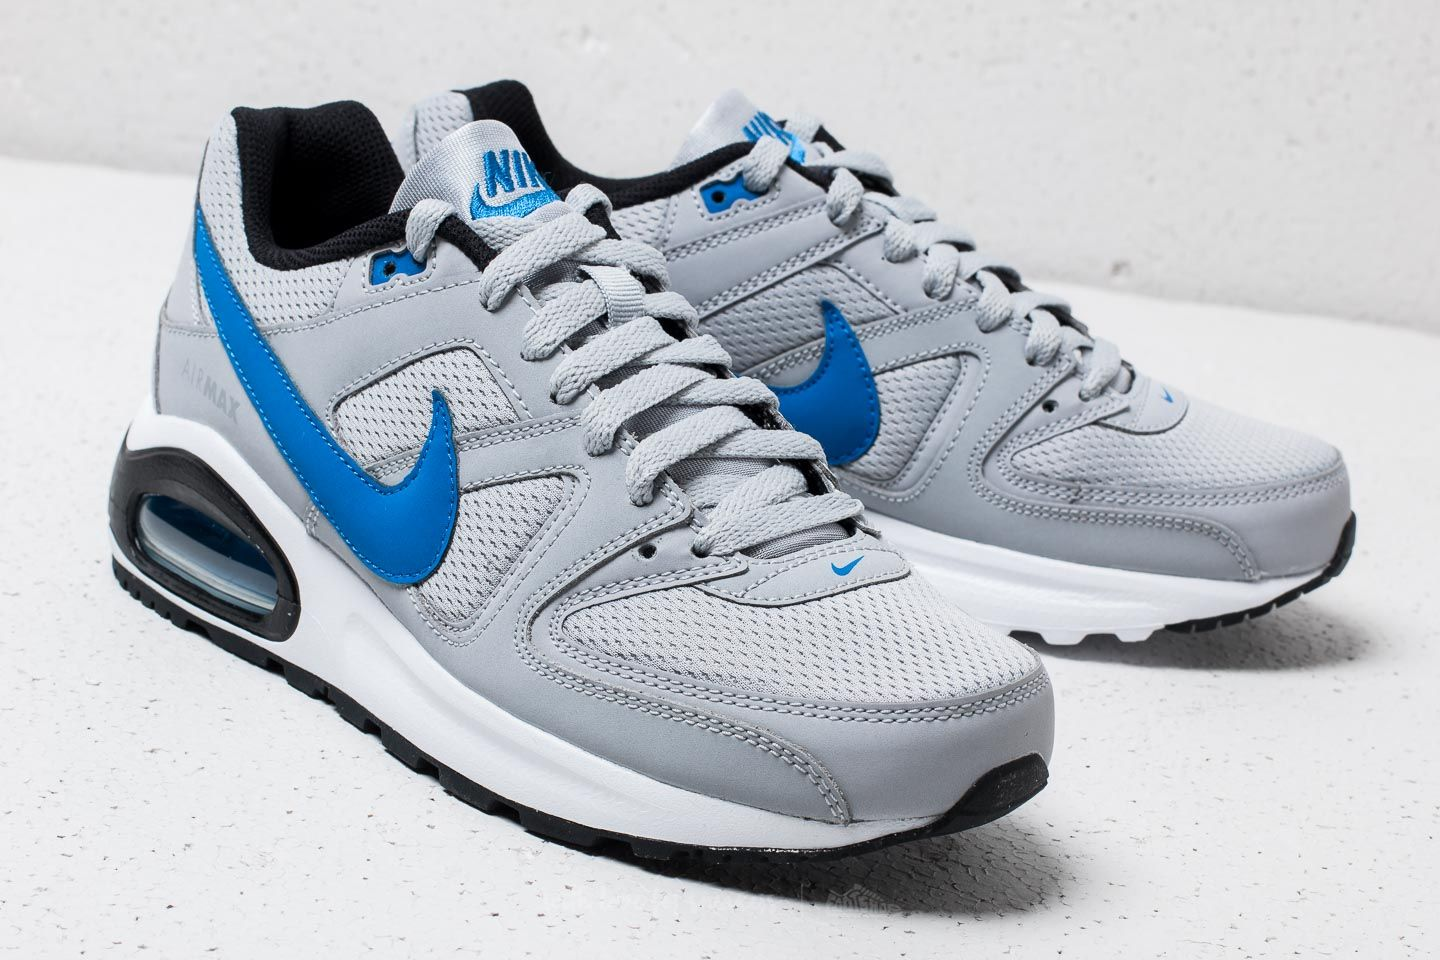 Nike Air Max Command Ocean Fog Dark Obsidian Purchaze